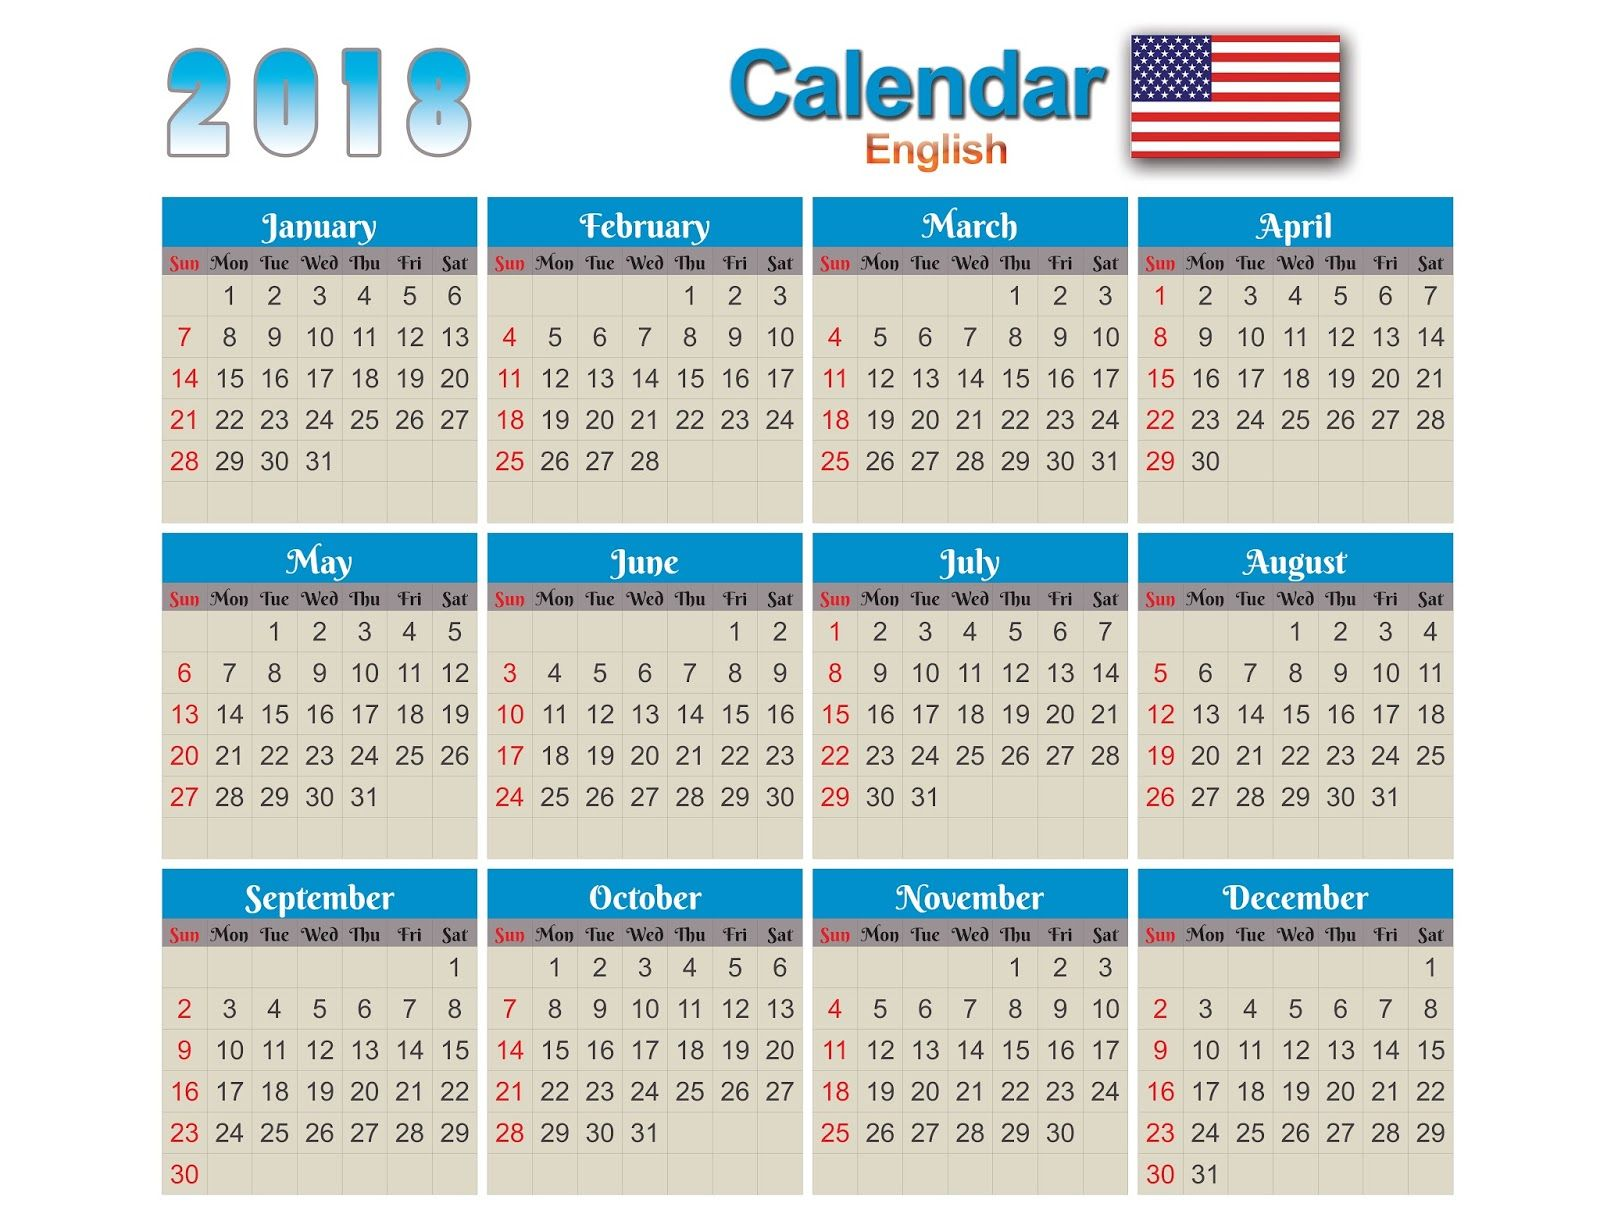 Calendar English : Calendars english eps ai cdr psd png e pdf vector